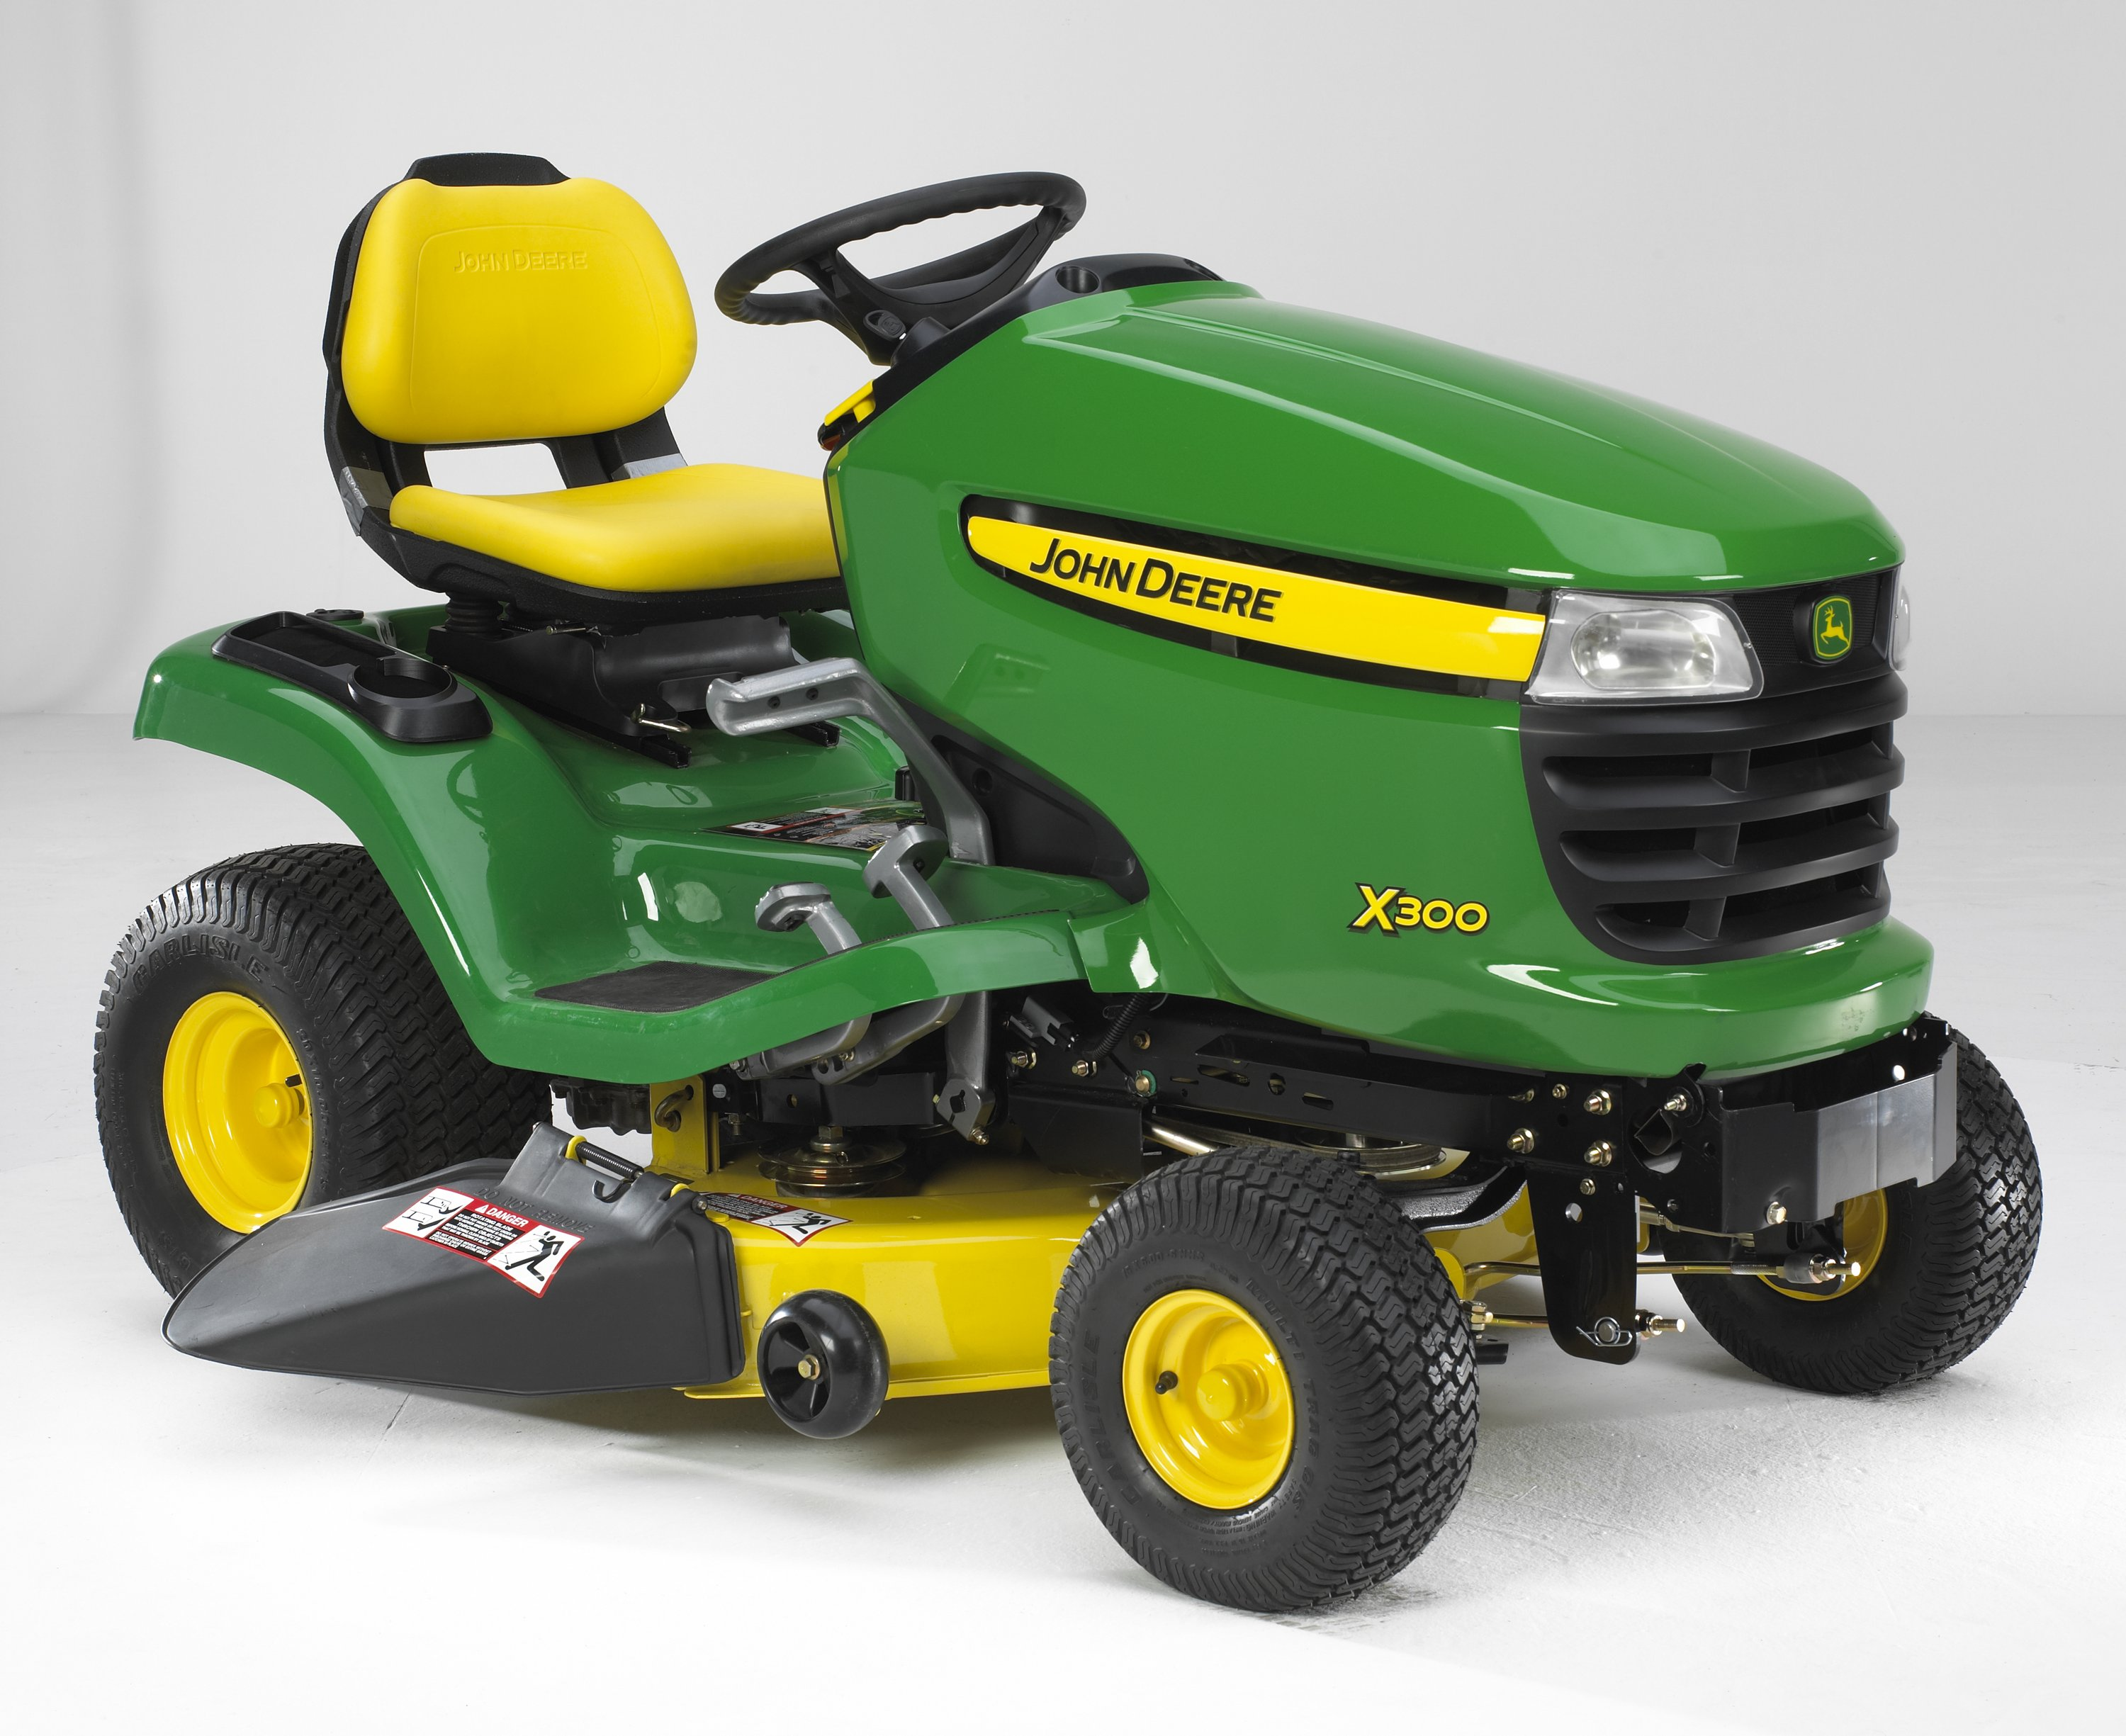 Riding Mower, Lawn Tractor, or Garden Tractor? - LawnEQ Blog